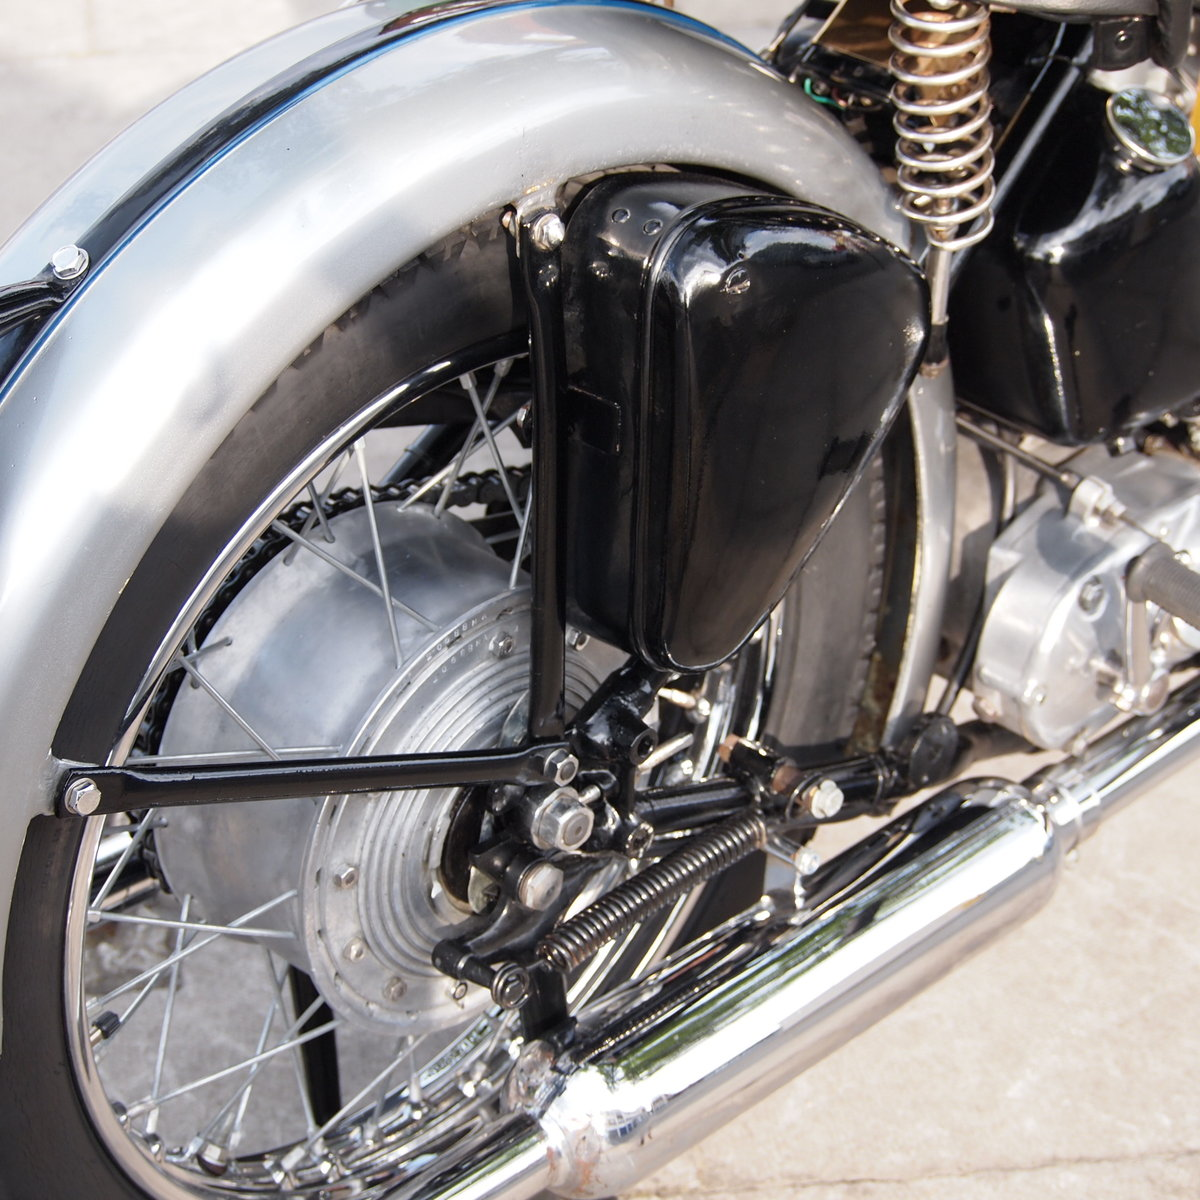 1952 T100 Tiger 499cc Sprung Hub, Lovely Bike You Must See. For Sale (picture 6 of 6)